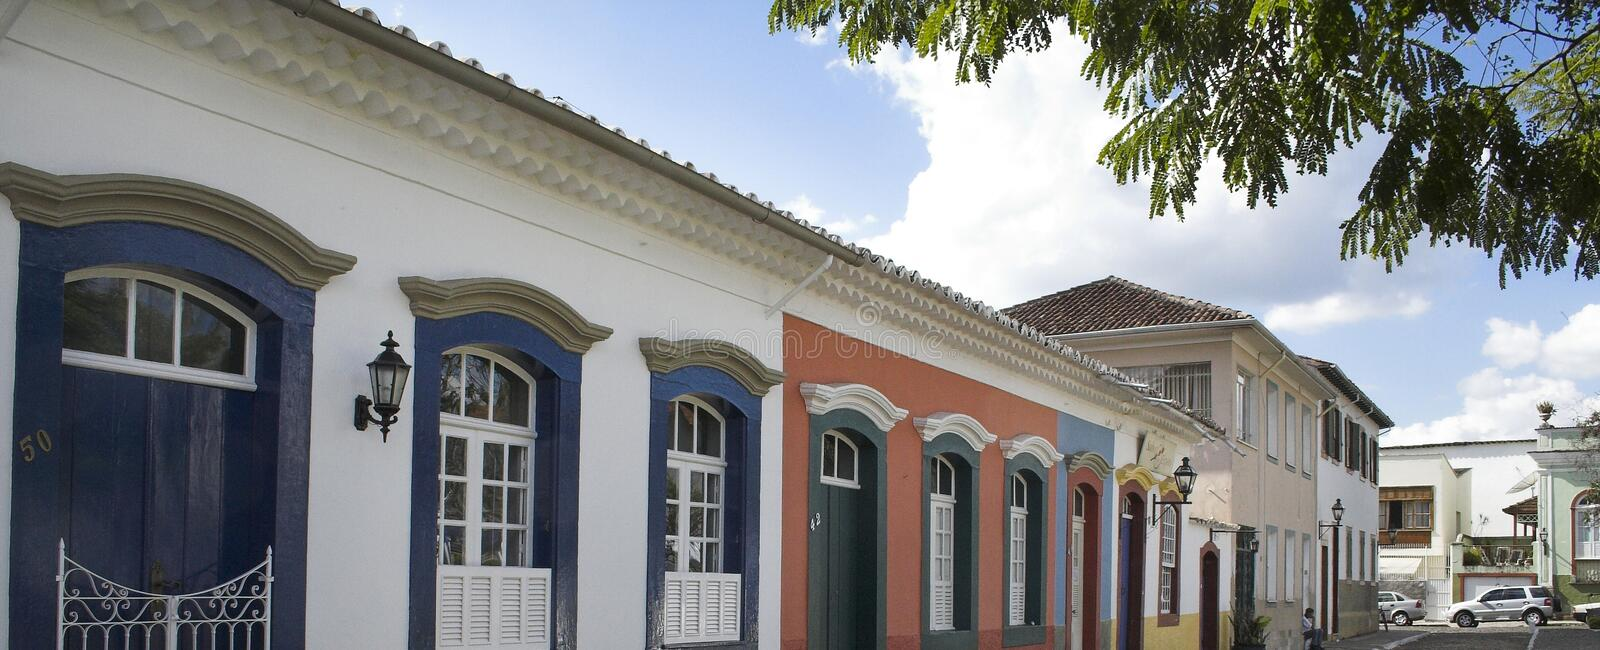 Padre Xavier Street Sao Joao del Rey. Padre Xavier, a typical street in Sao Joao del Rey, Minas Gerais, Brazil with its colonial historical housing royalty free stock images